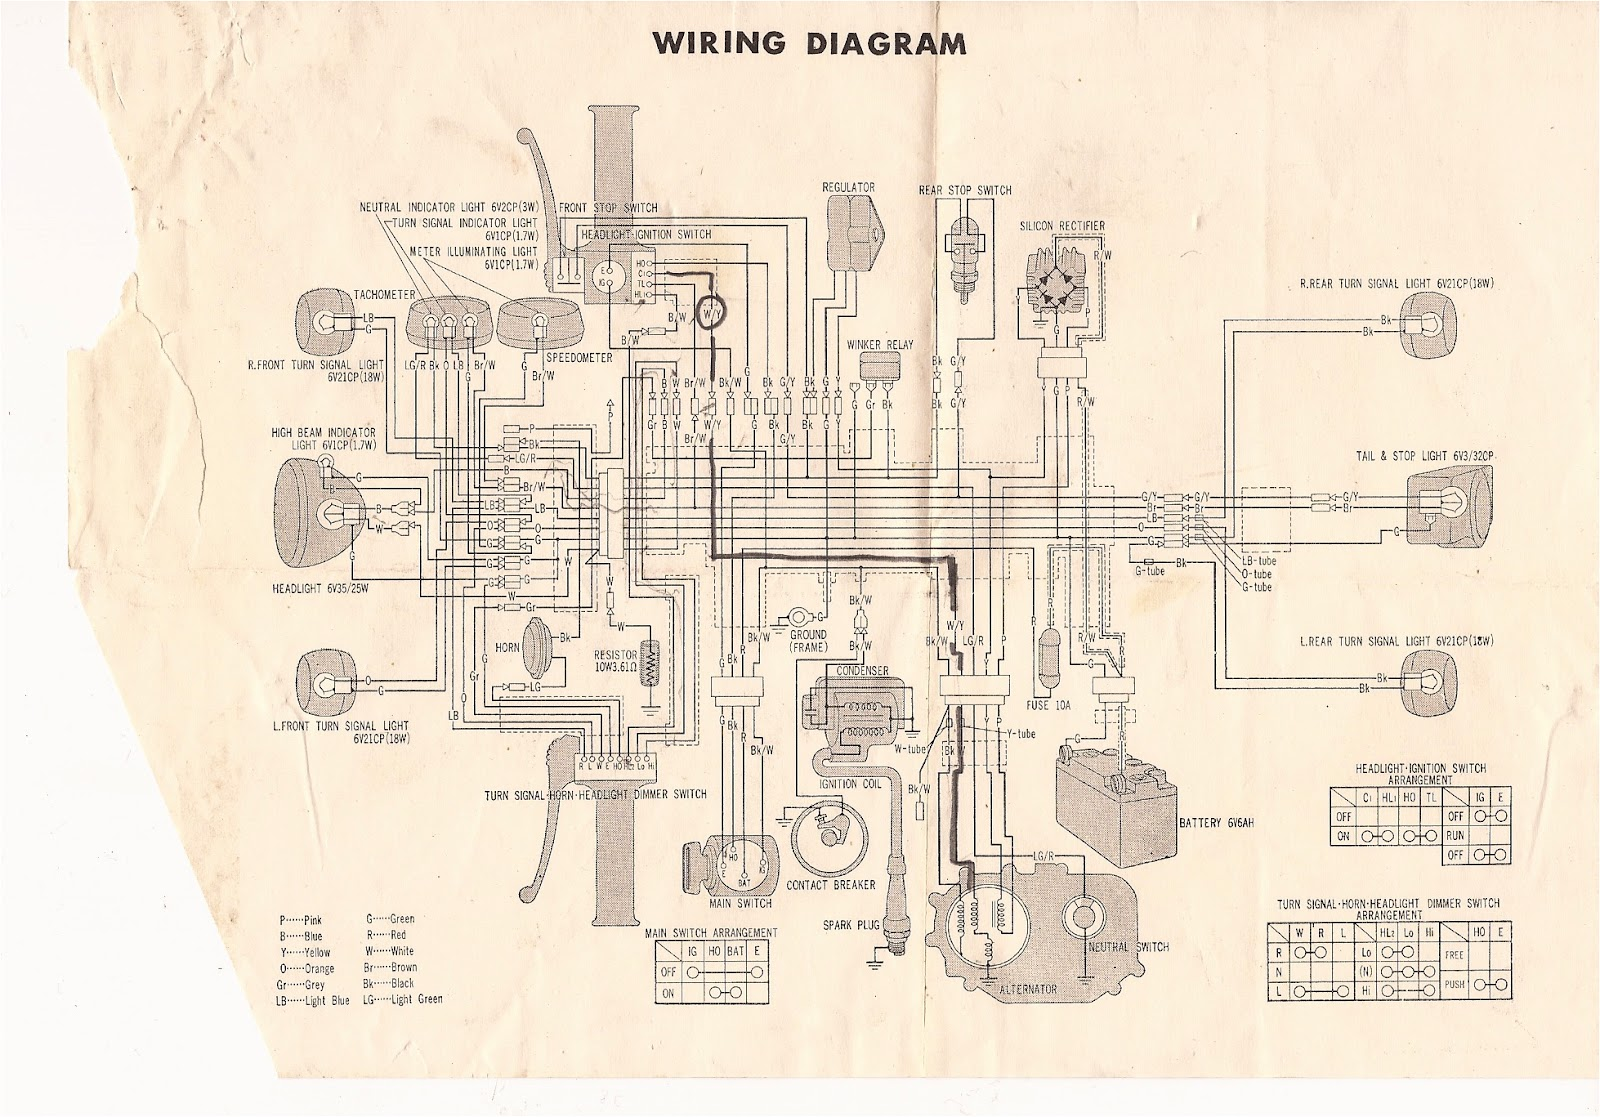 XL350+Wiring+diagram 1974cb360 wiring diagram residential electrical wiring diagrams 1974 cb360 wiring diagram at aneh.co